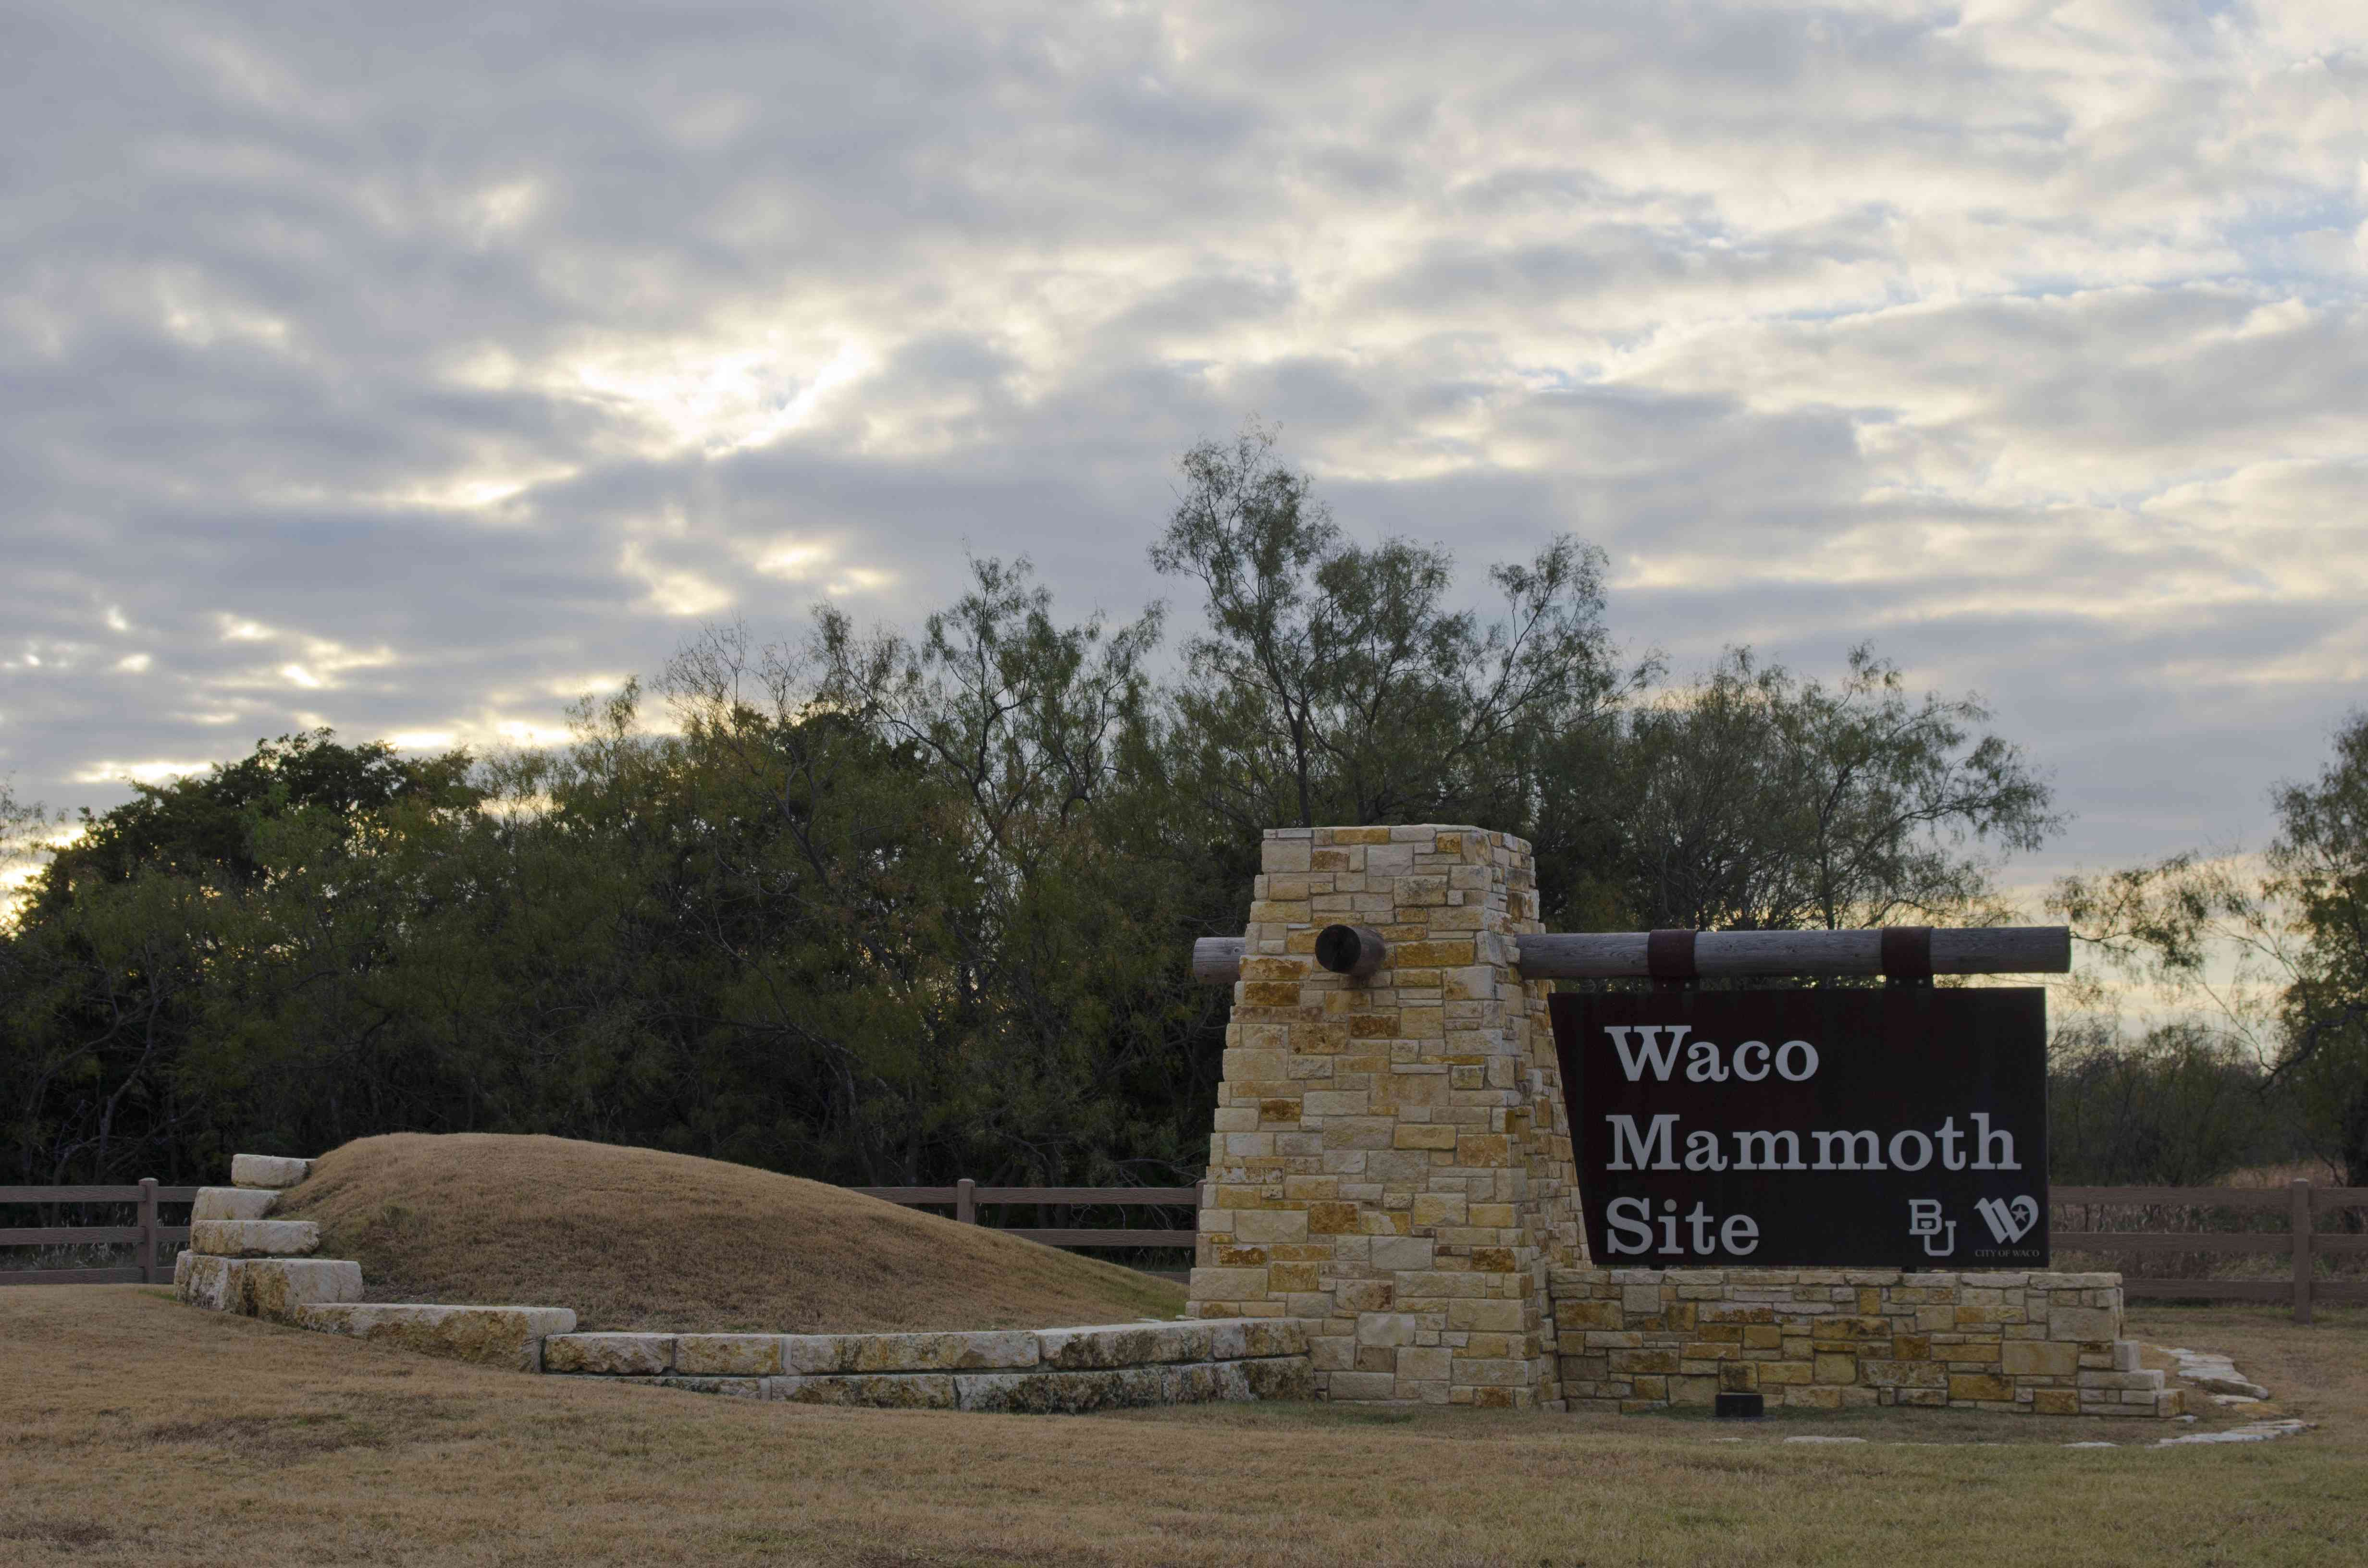 Entrance Sign to Waco Mammoth Site